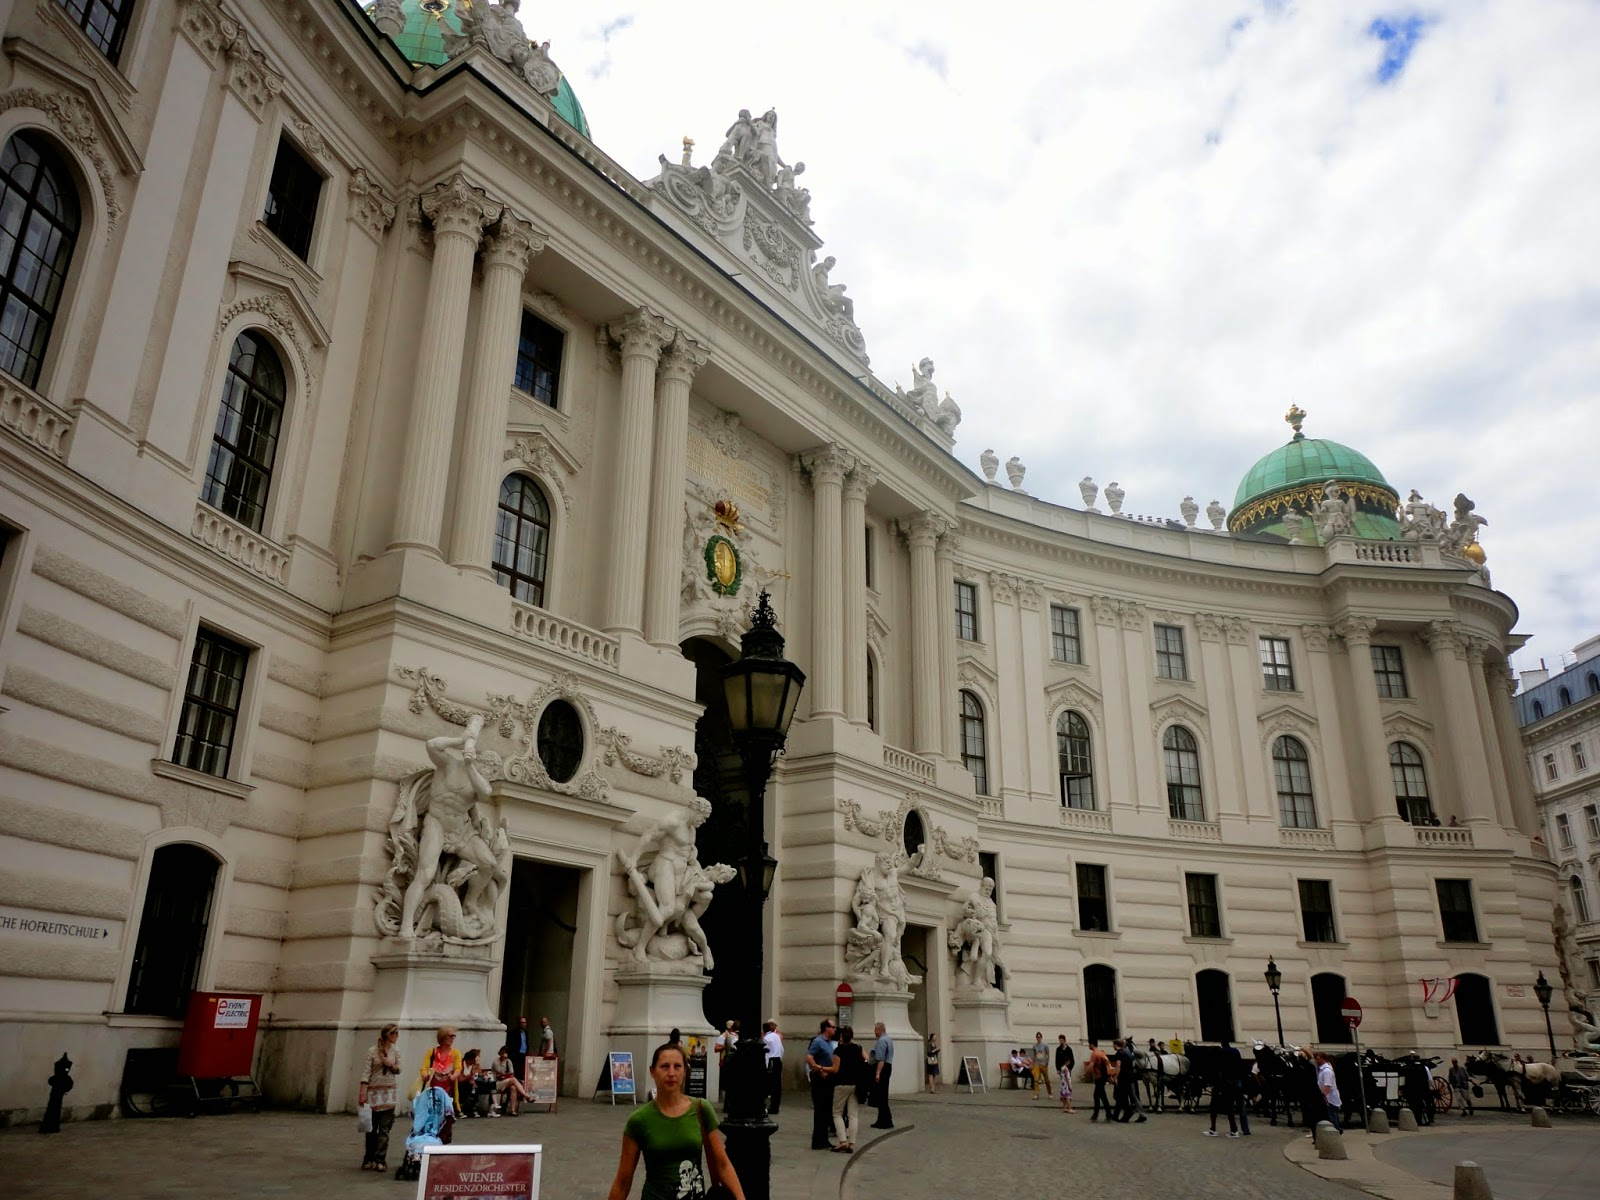 Palace building exterior in Vienna, Austria